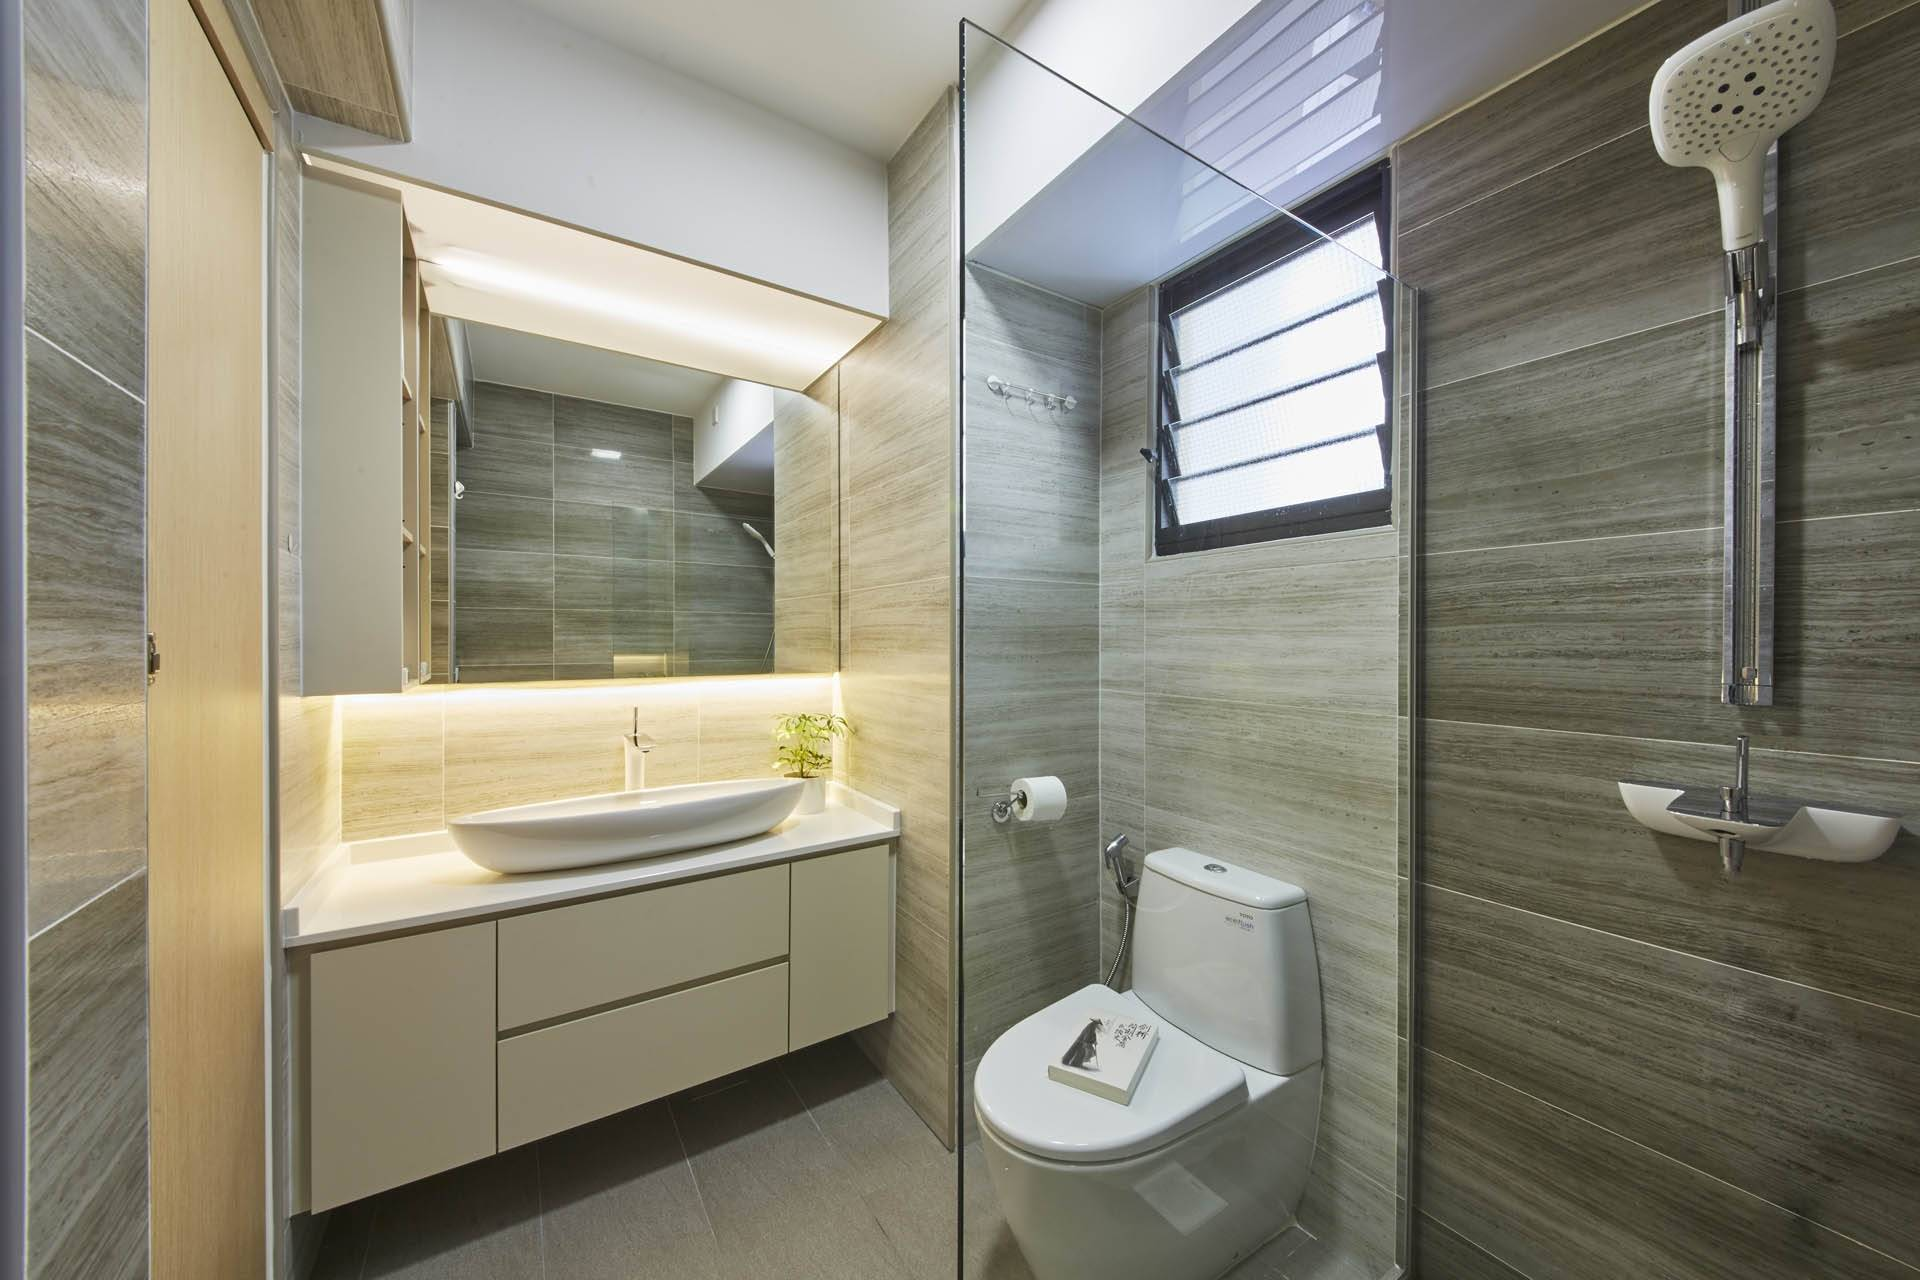 Hdb bathroom design for Bathroom room design